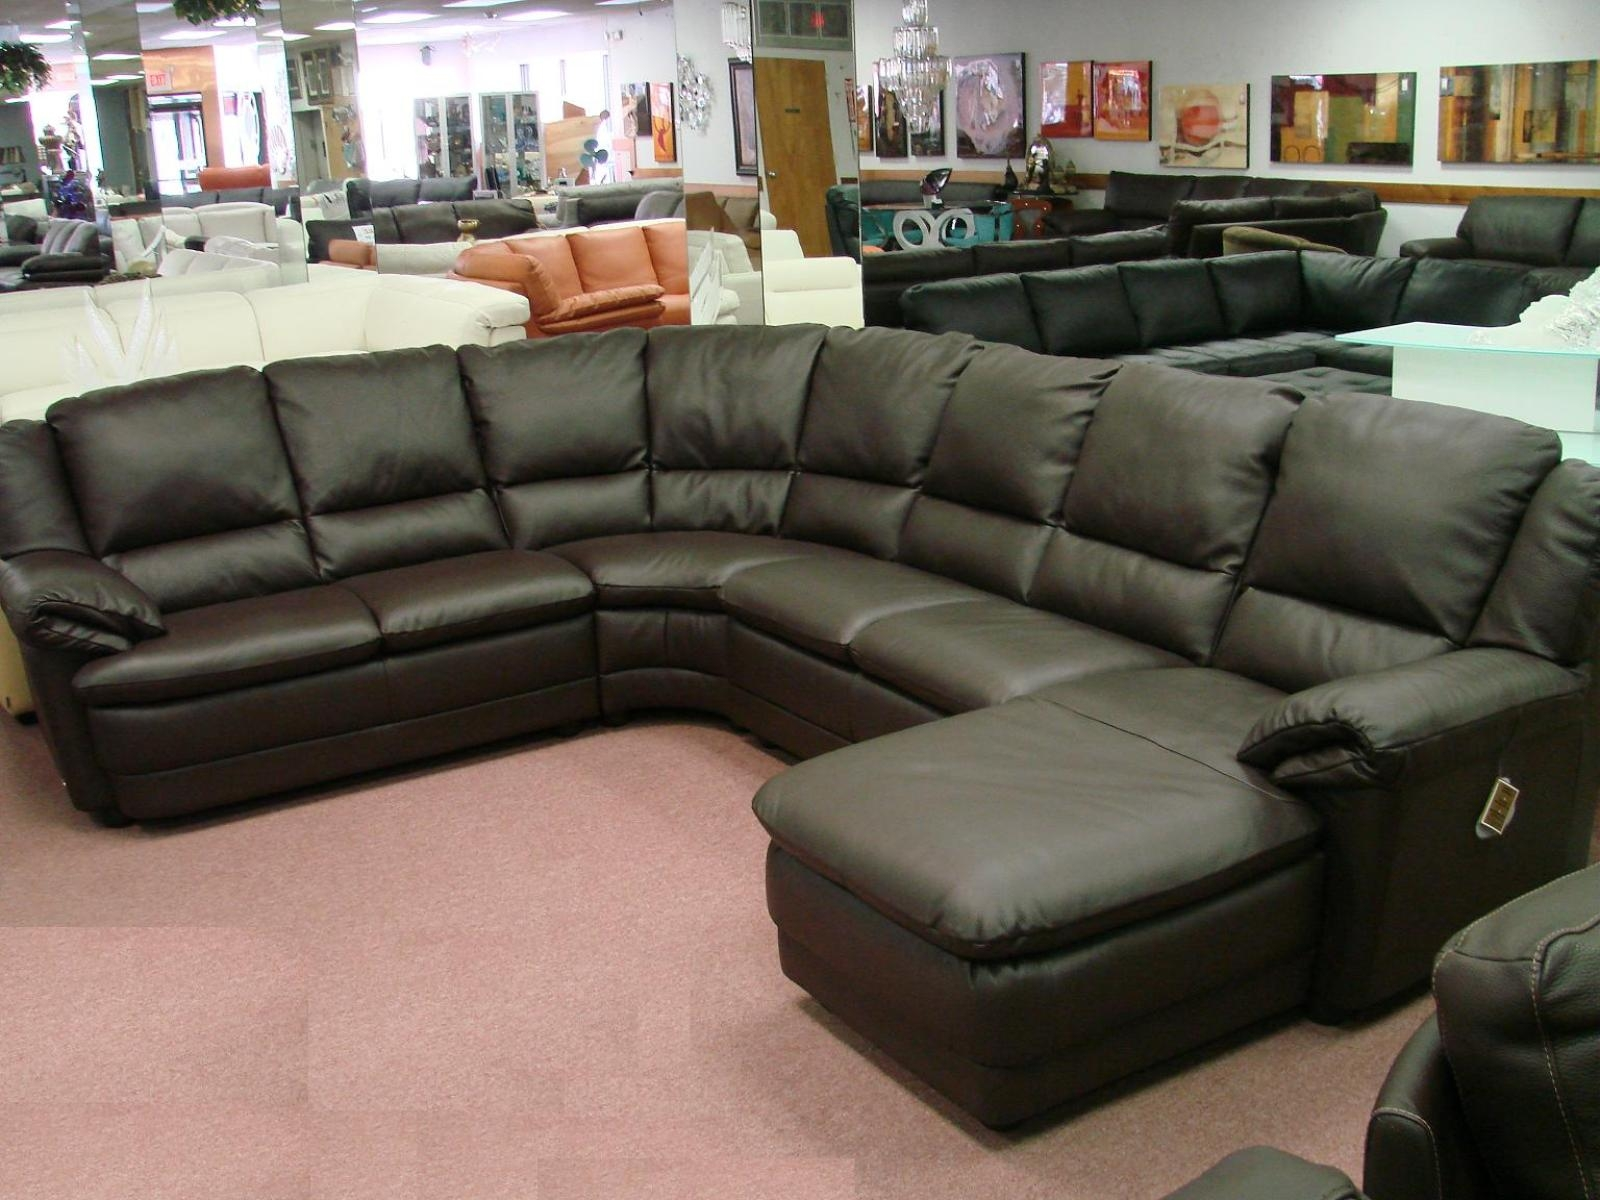 Sofa 9 Awesome Leather Sofa Sectionals On Sale Wj21 For Closeout Sectional Sofas (View 11 of 15)